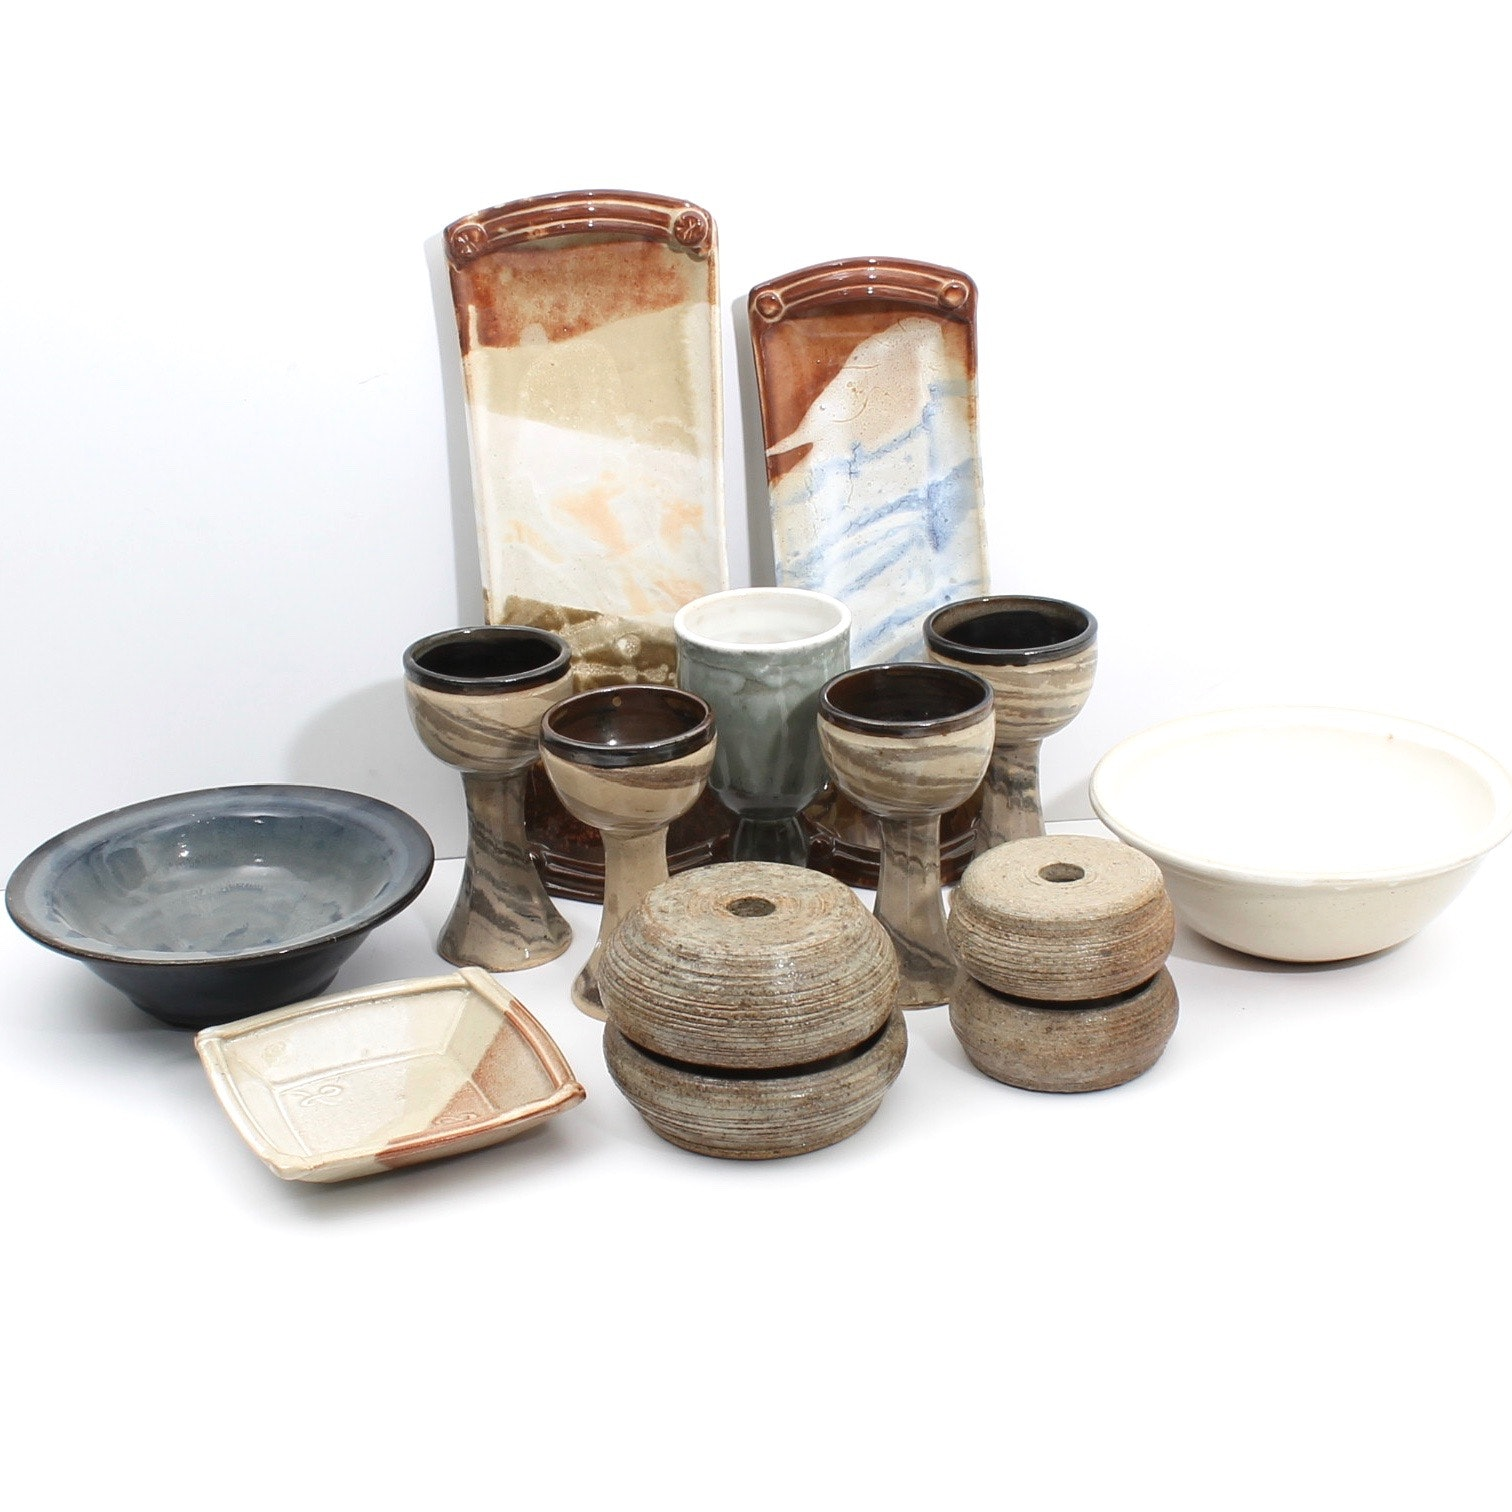 Fred Borthwick Hand Thrown and Built Art Pottery